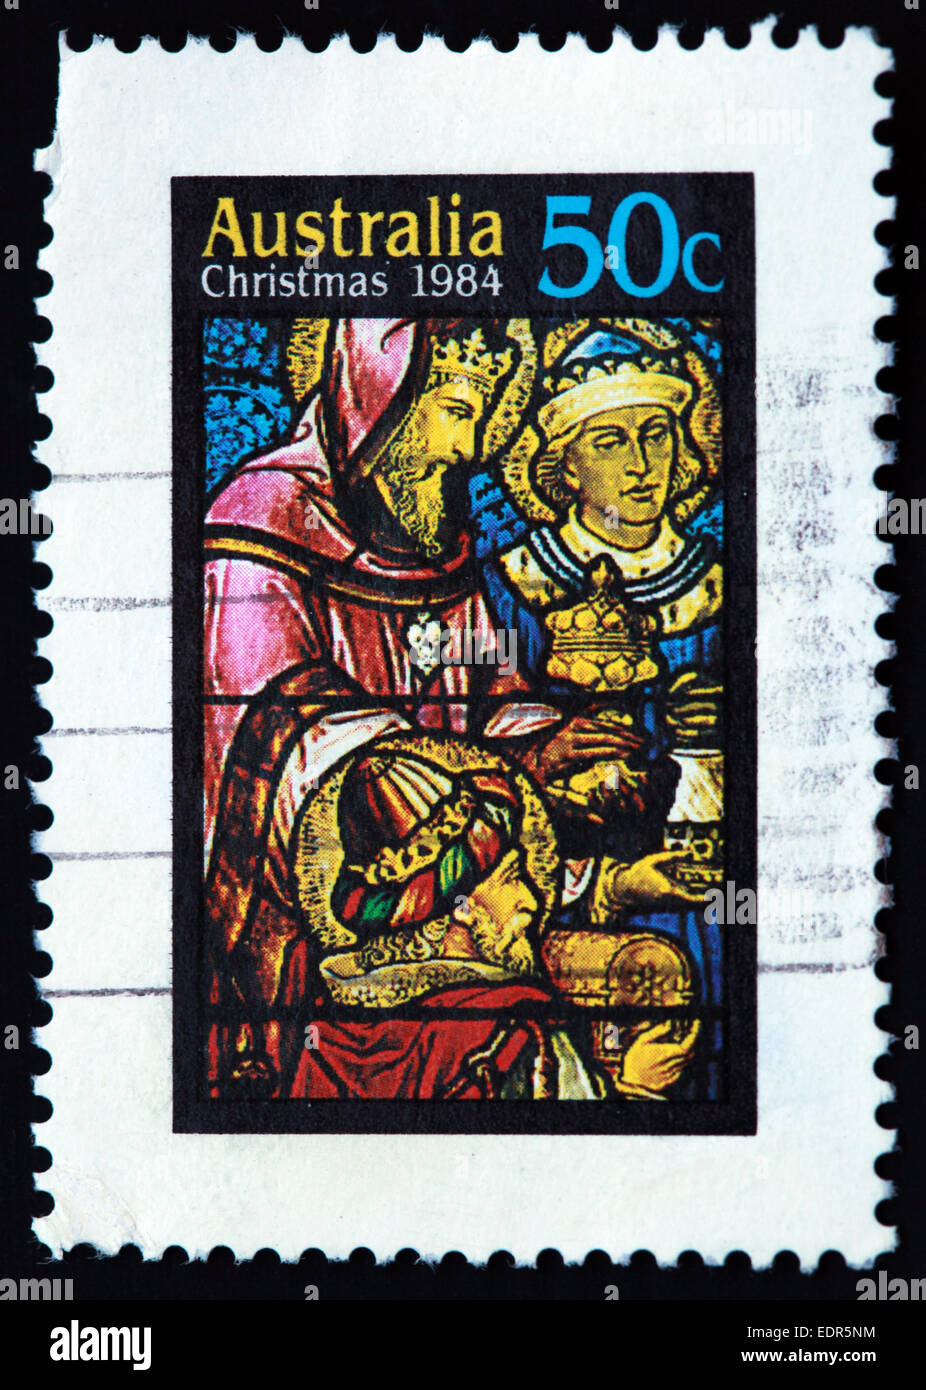 Used and postmarked Australia / Austrailian Stamp Christmas 1984 50c - Stock Image